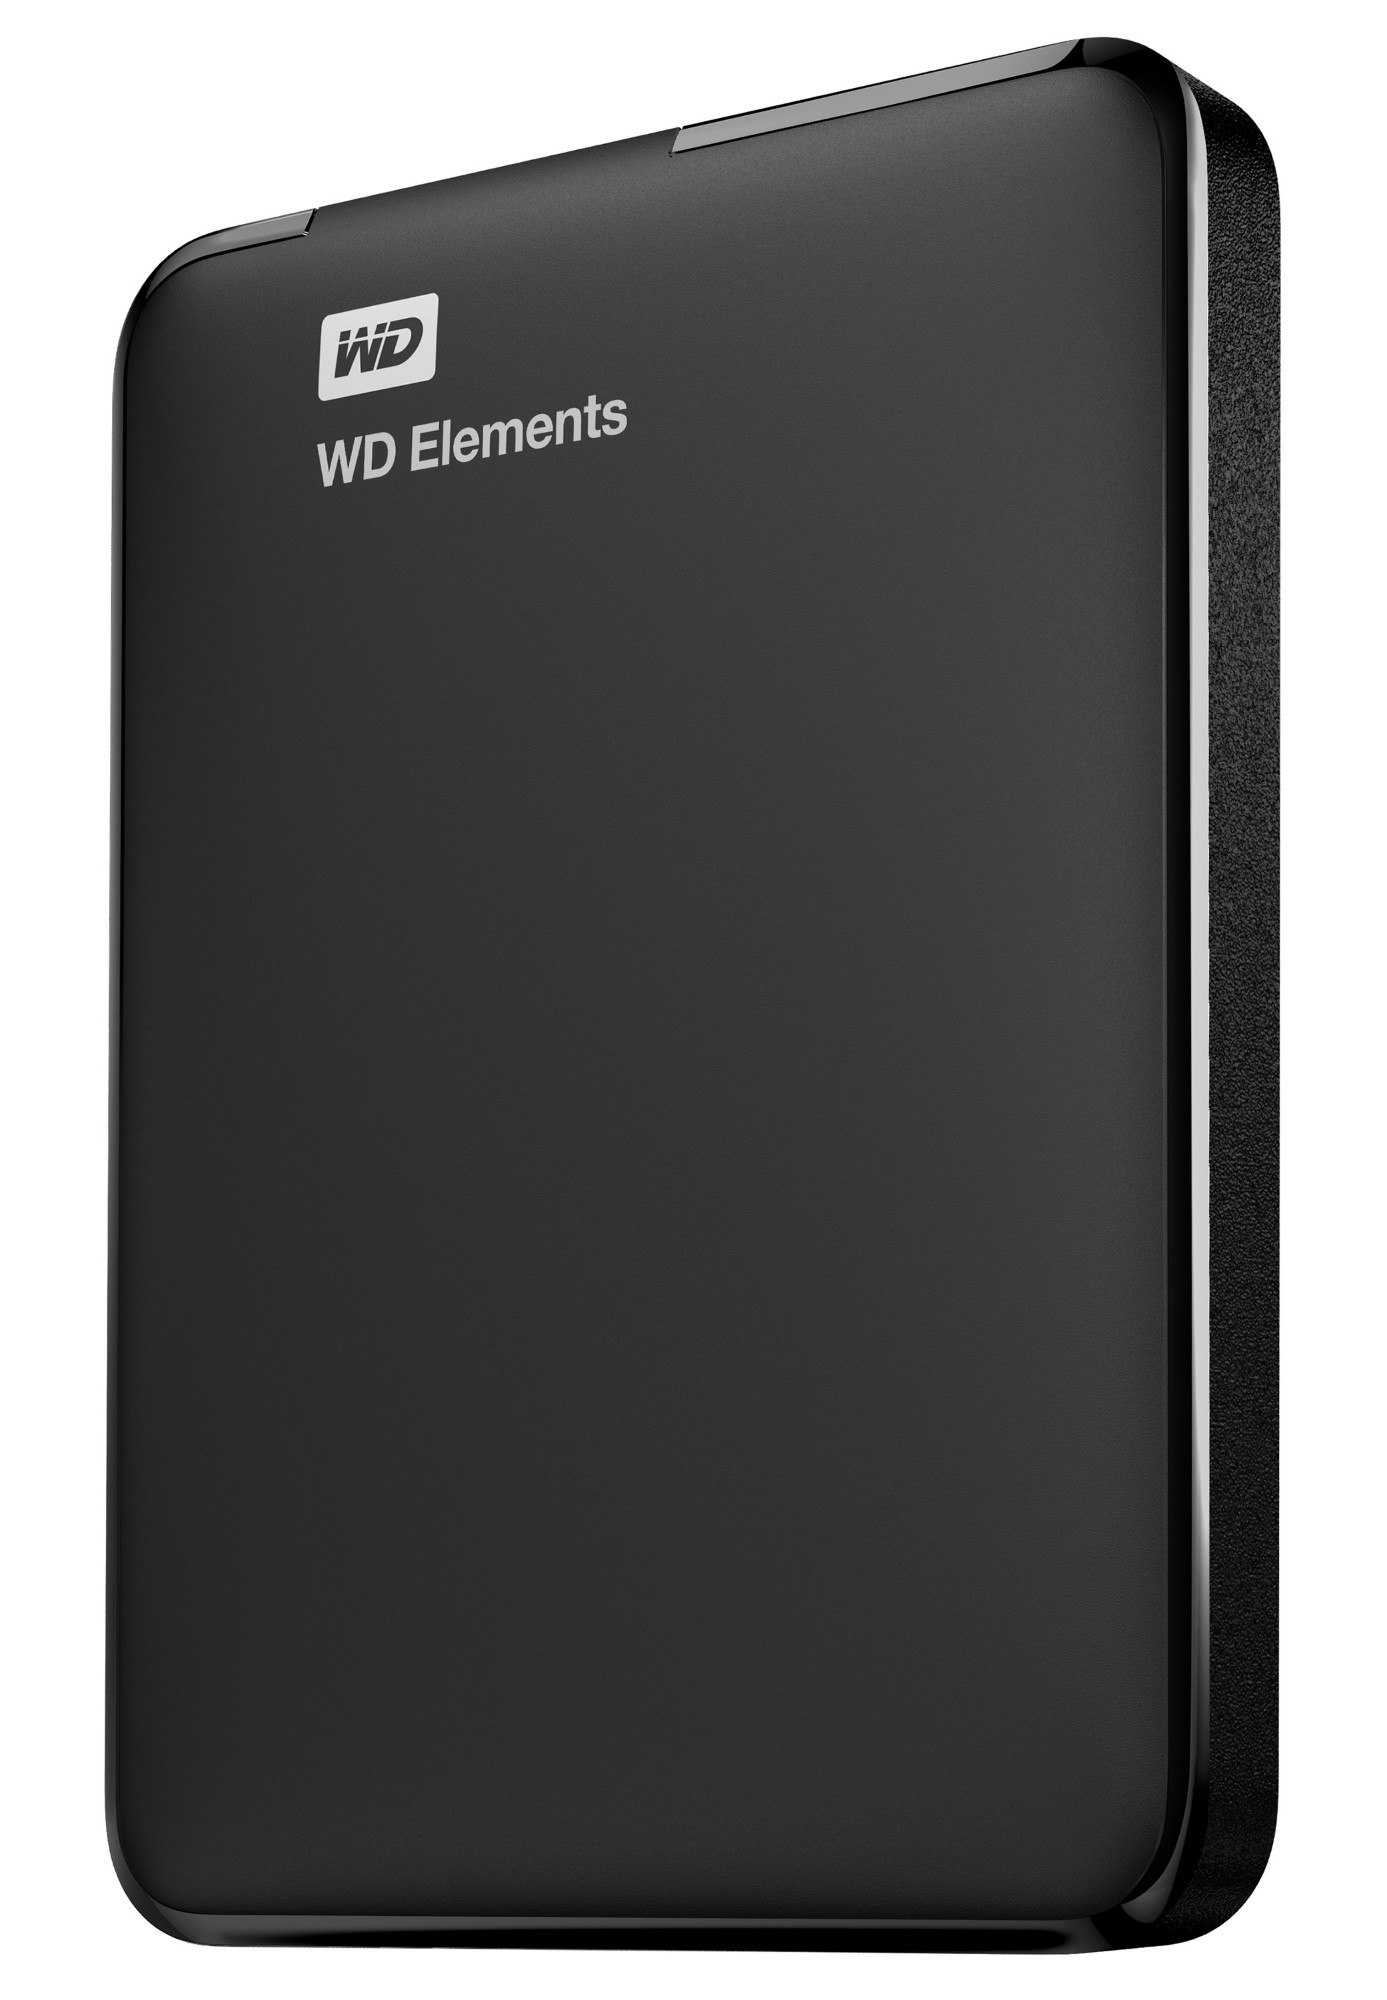 Western Digital WD Elements Portable disco duro externo 1000 GB Negro